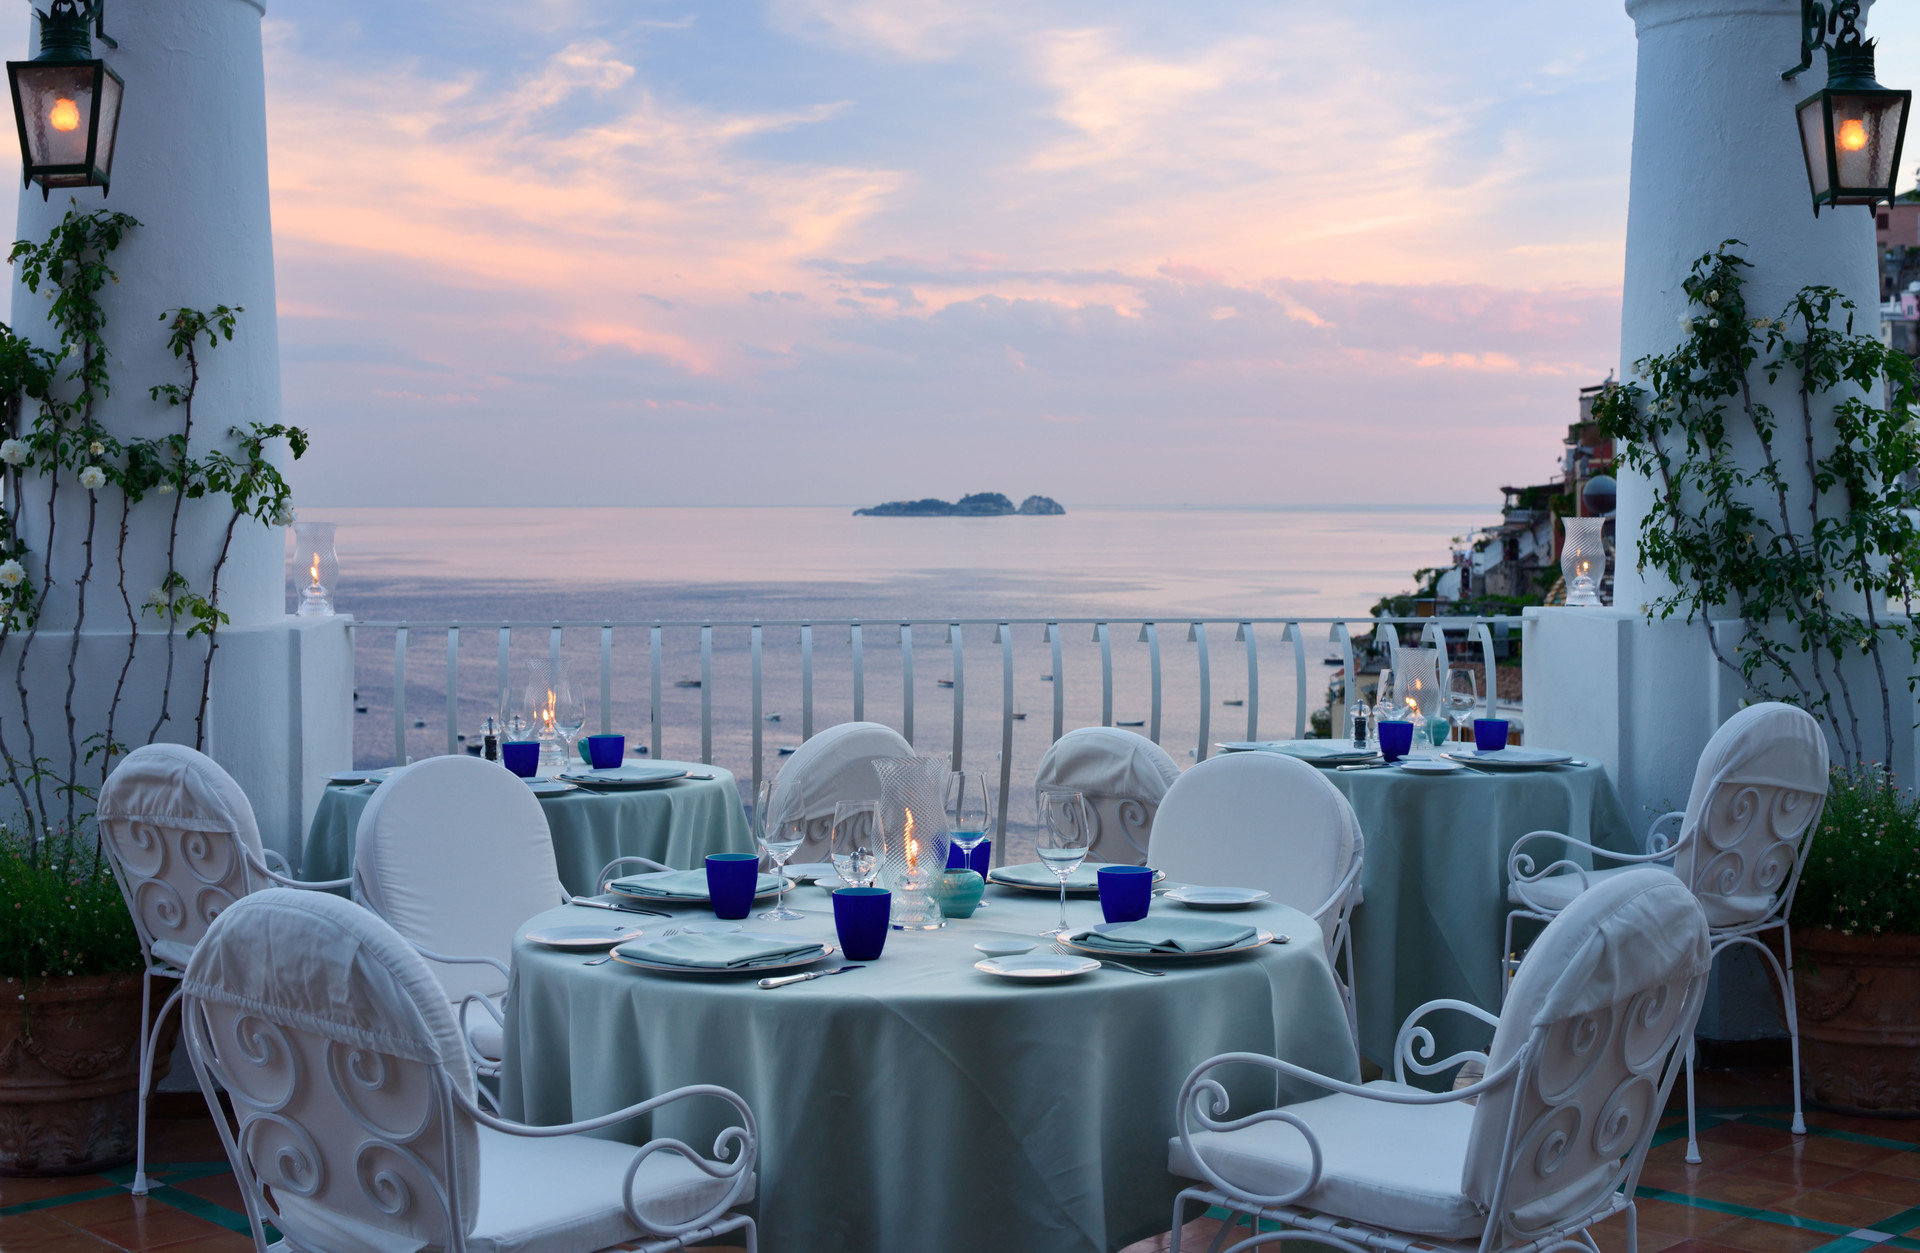 calm dawn Dining dusk europe Hotels Island Ocean ocean view outdoor dining Patio private dining remote serene table Terrace restaurant vacation estate Resort Villa